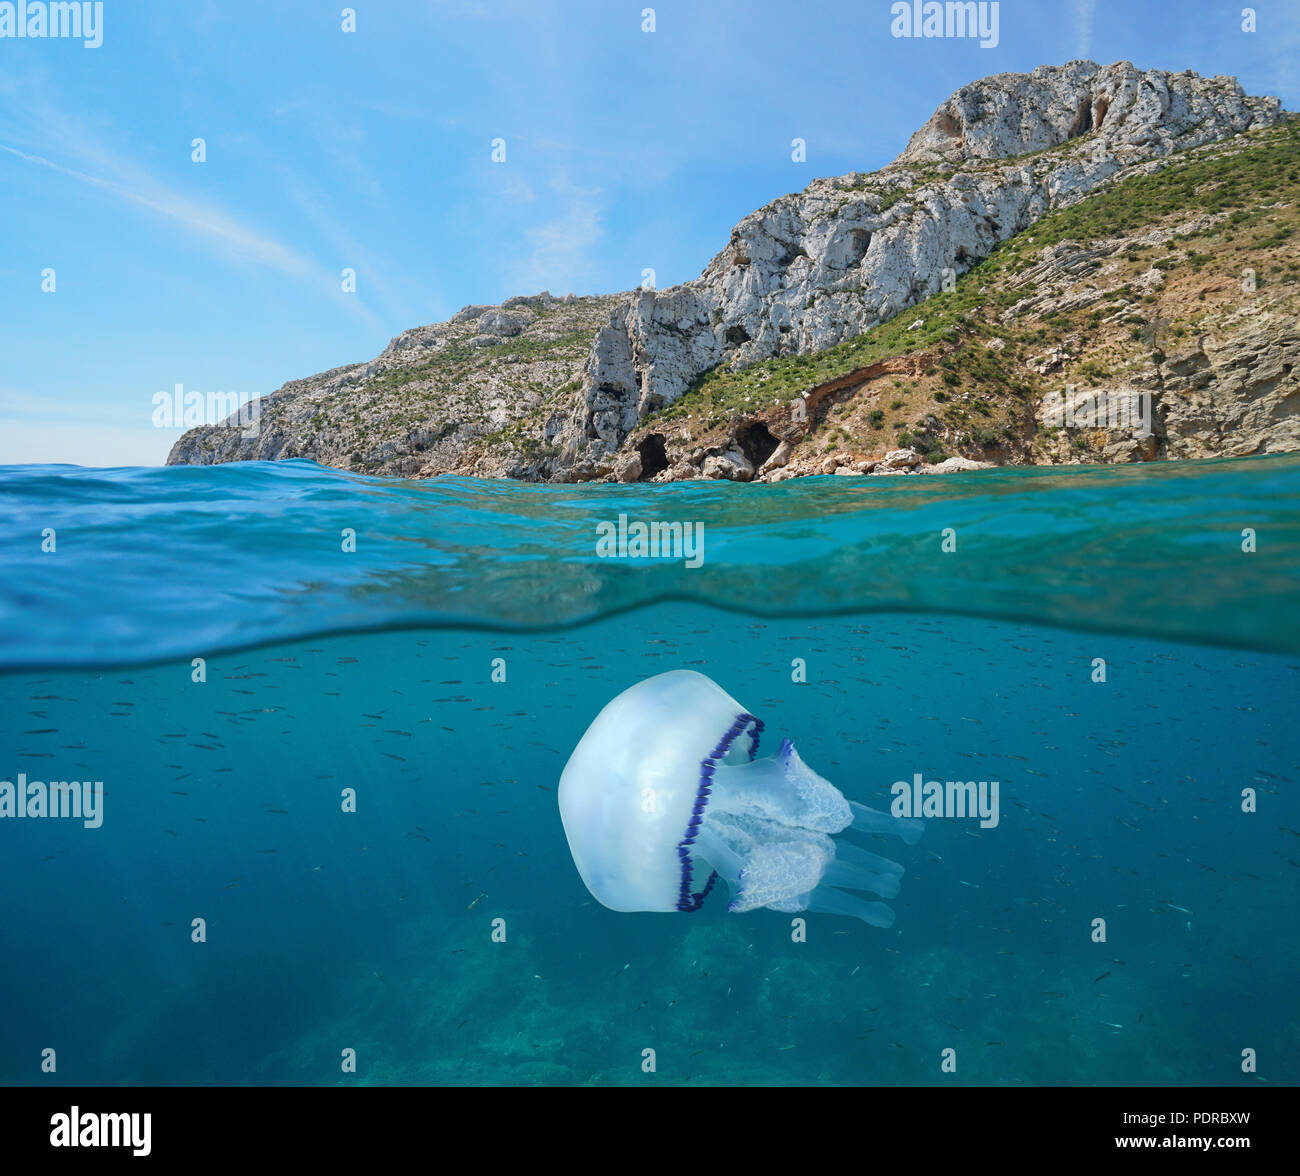 Rocky coast with a jellyfish and small fish underwater, split view above and below water surface, Mediterranean sea, Javea, Costa Blanca, Spain - Stock Image